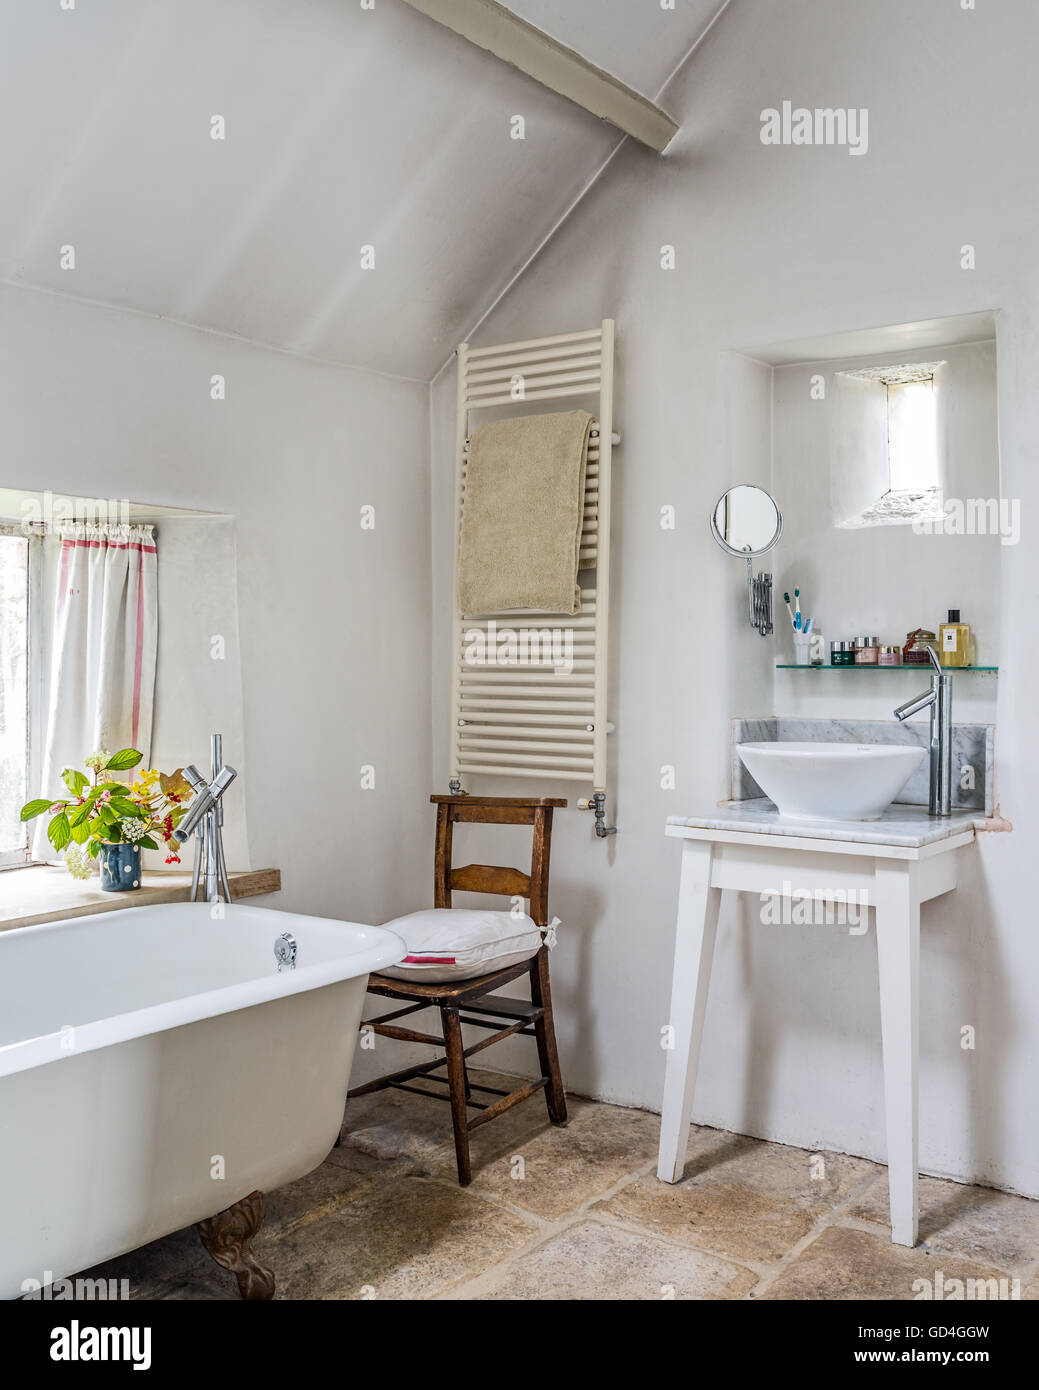 Heated radiator and wash basin with vintage wooden chair in bathroom - Stock Image